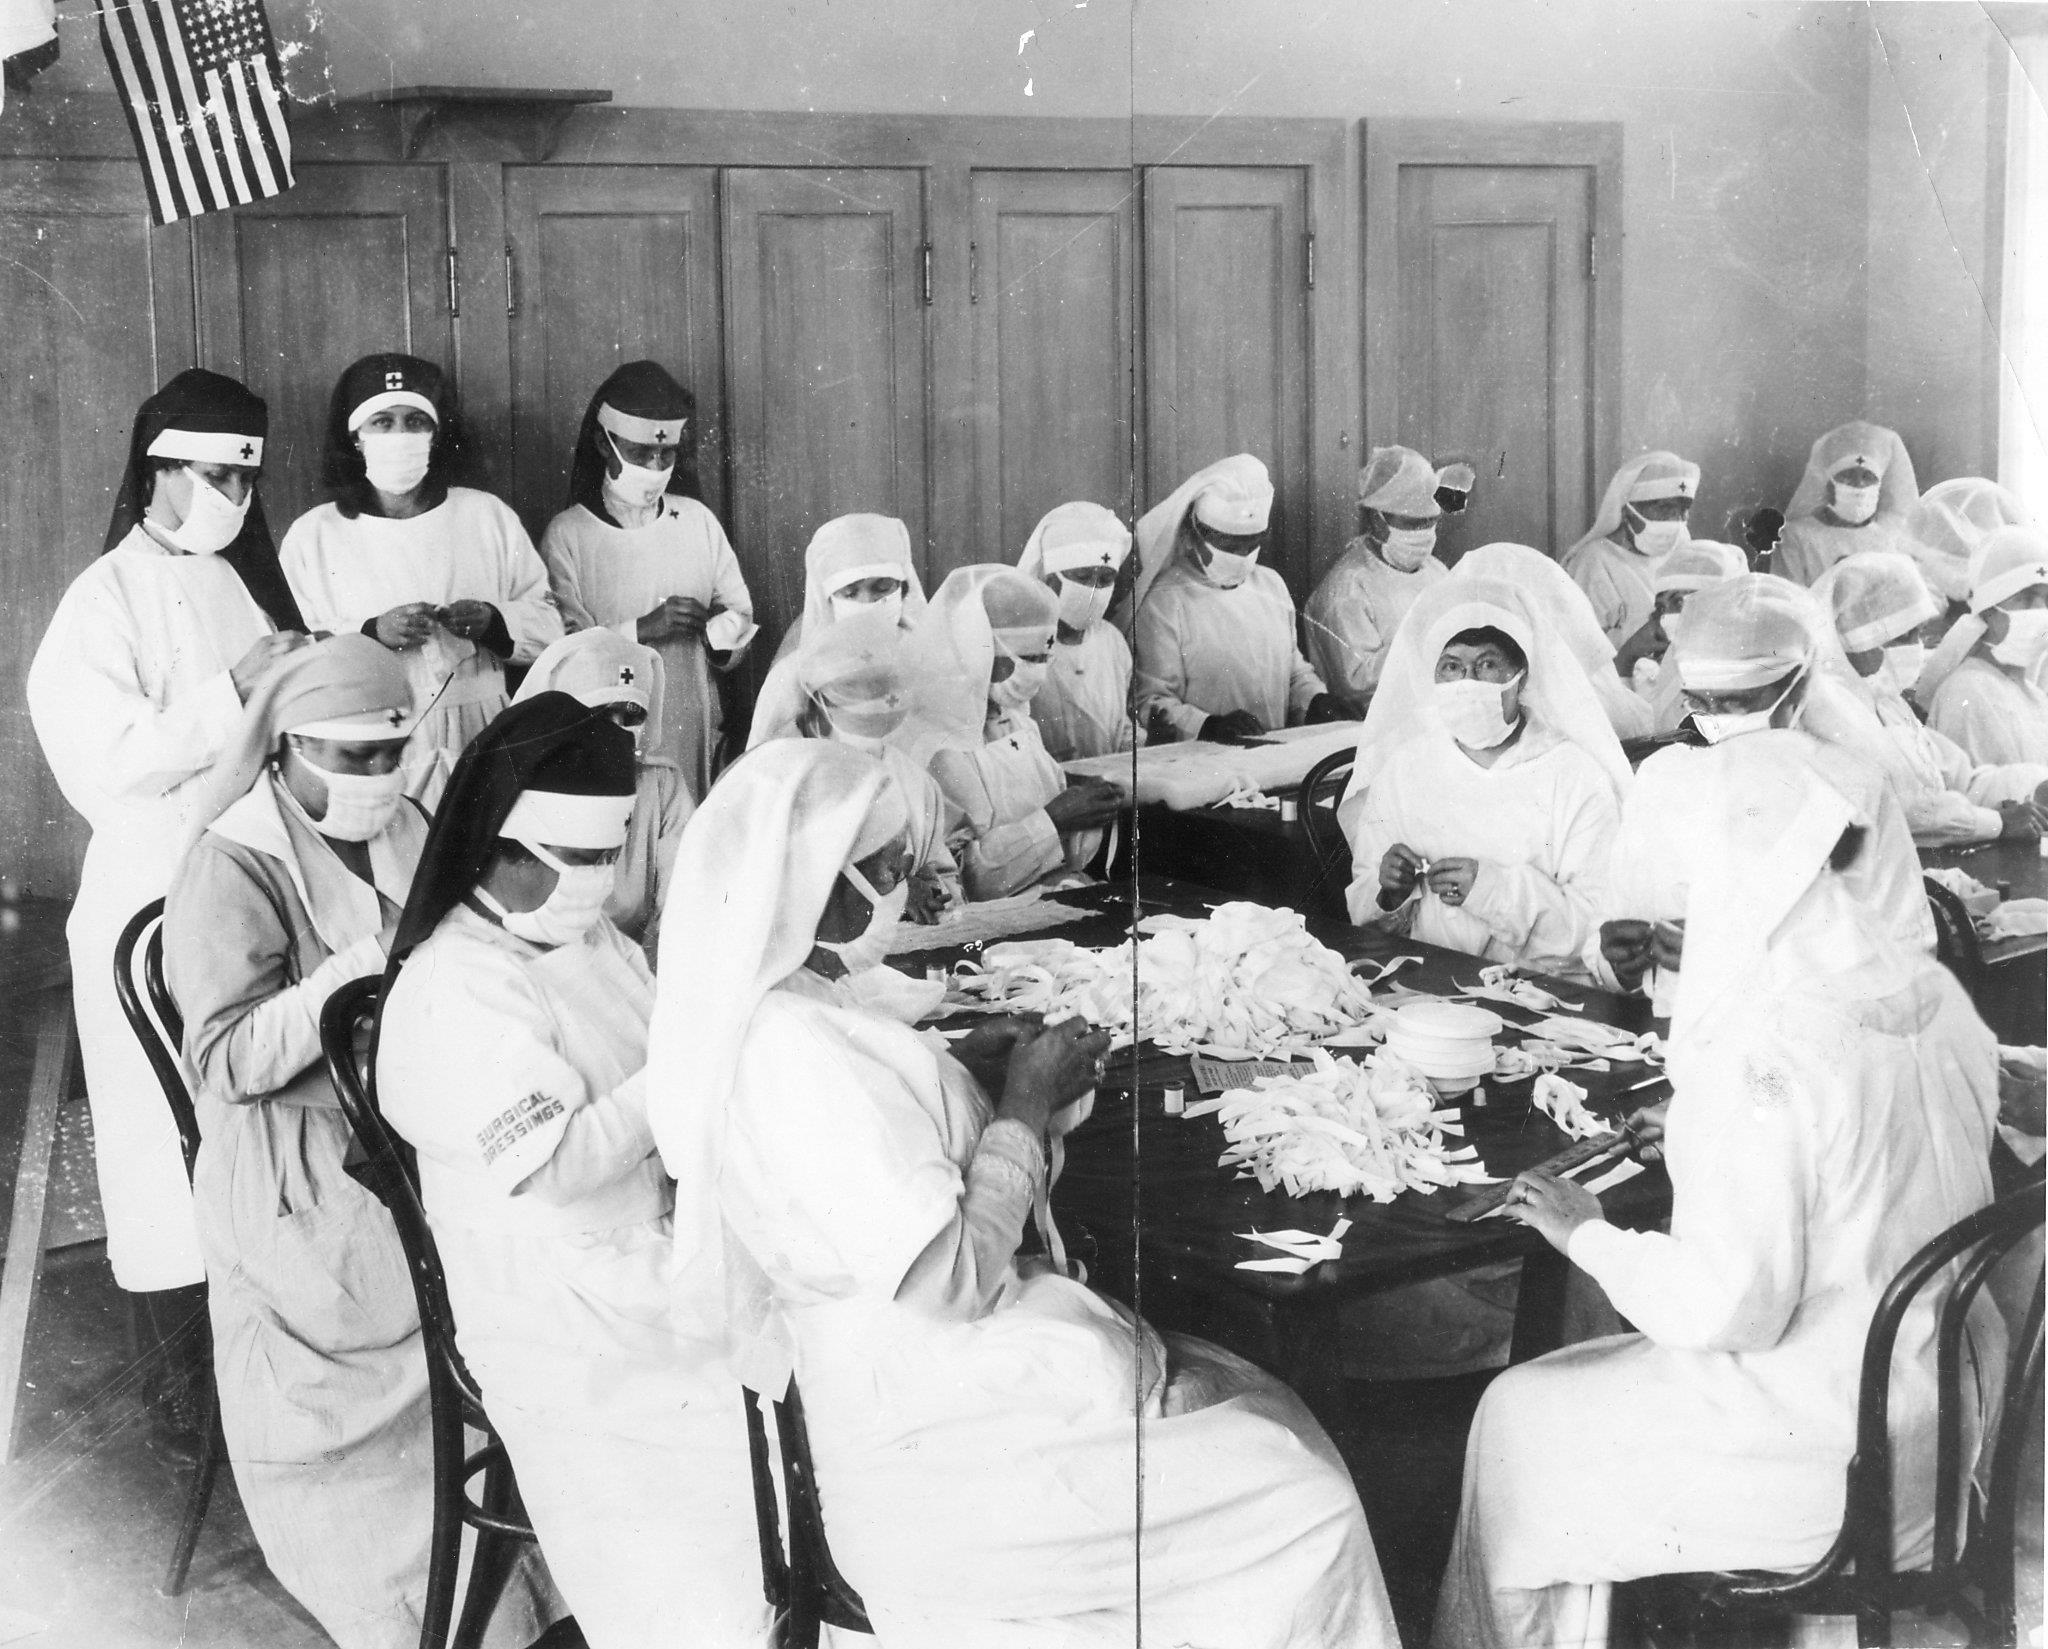 Long before the coronavirus, SF faced the 1918 Spanish flu. It was ...